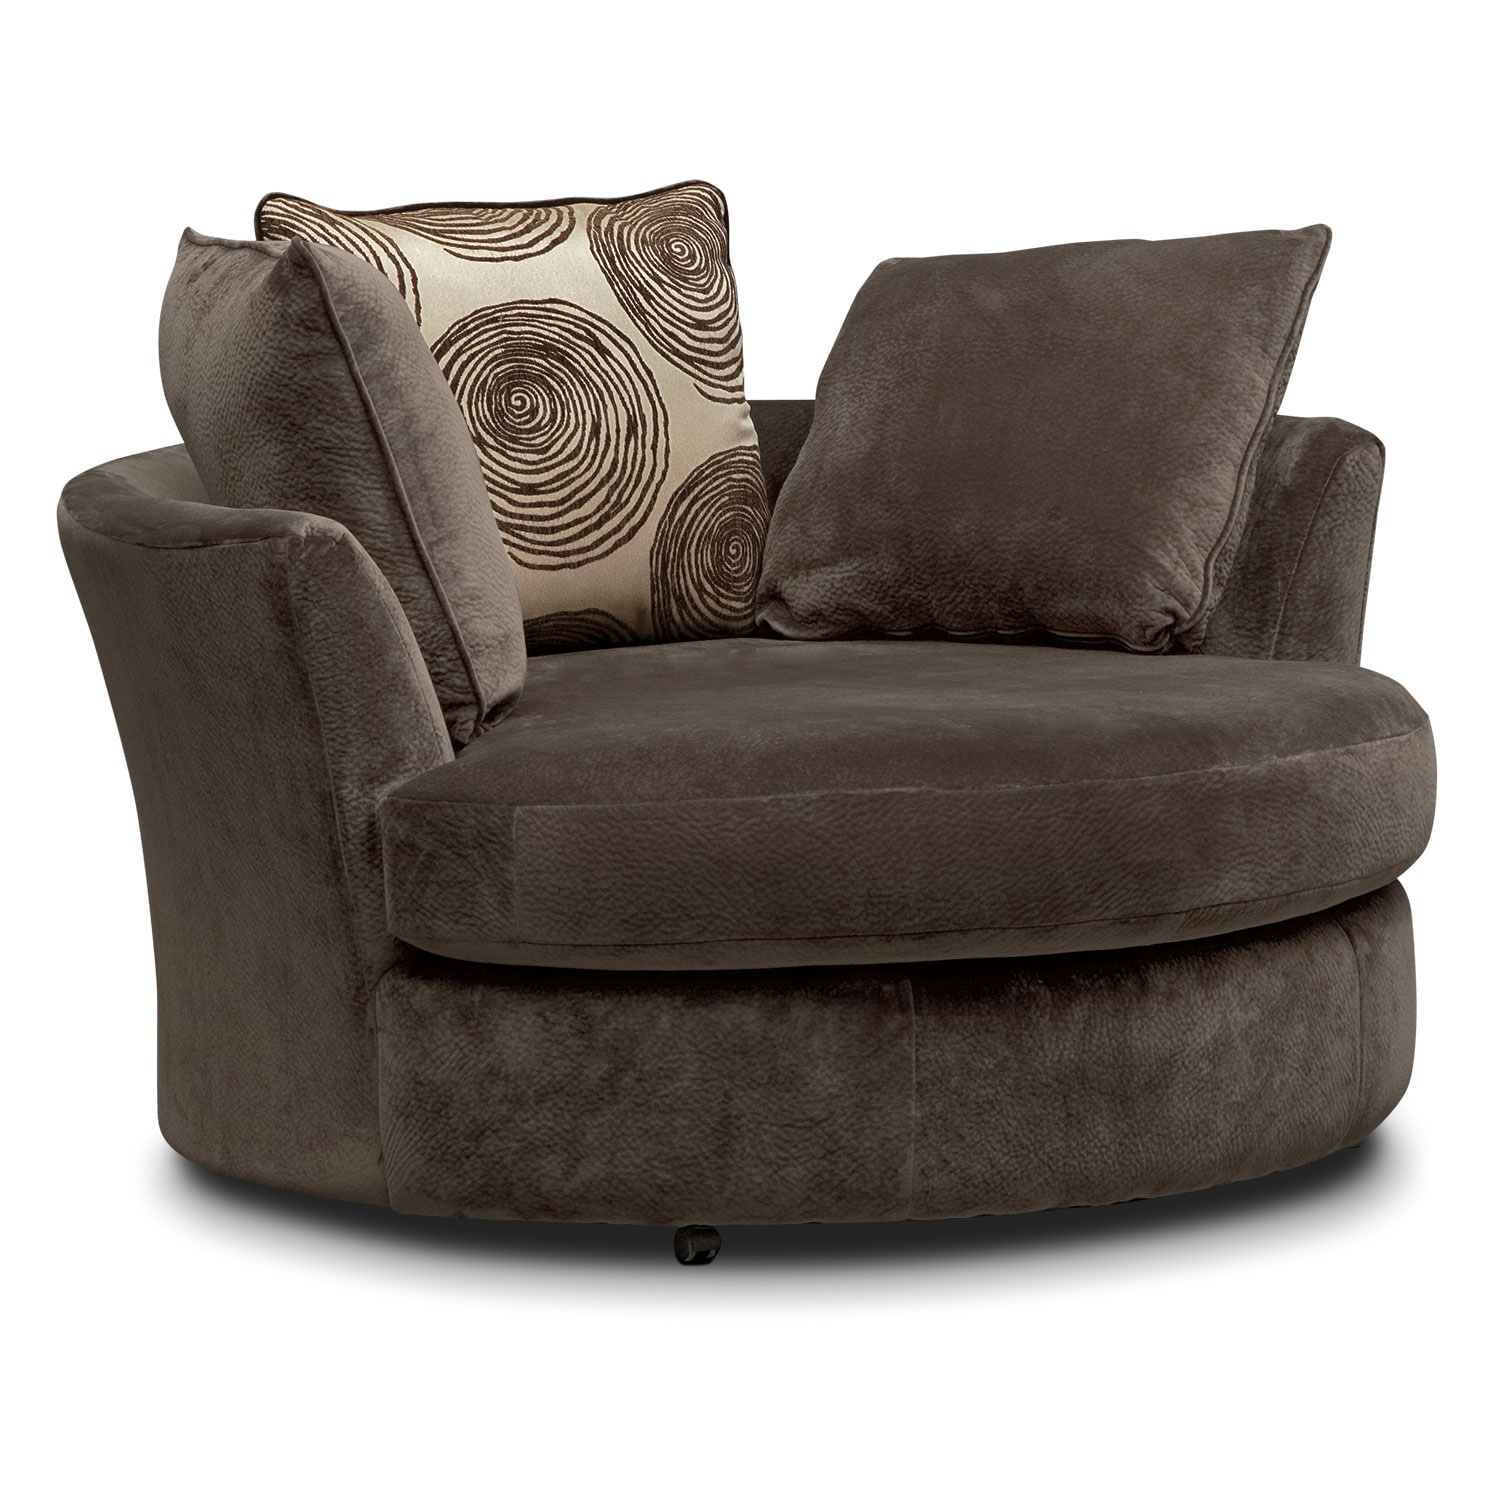 Home Accents Outlet